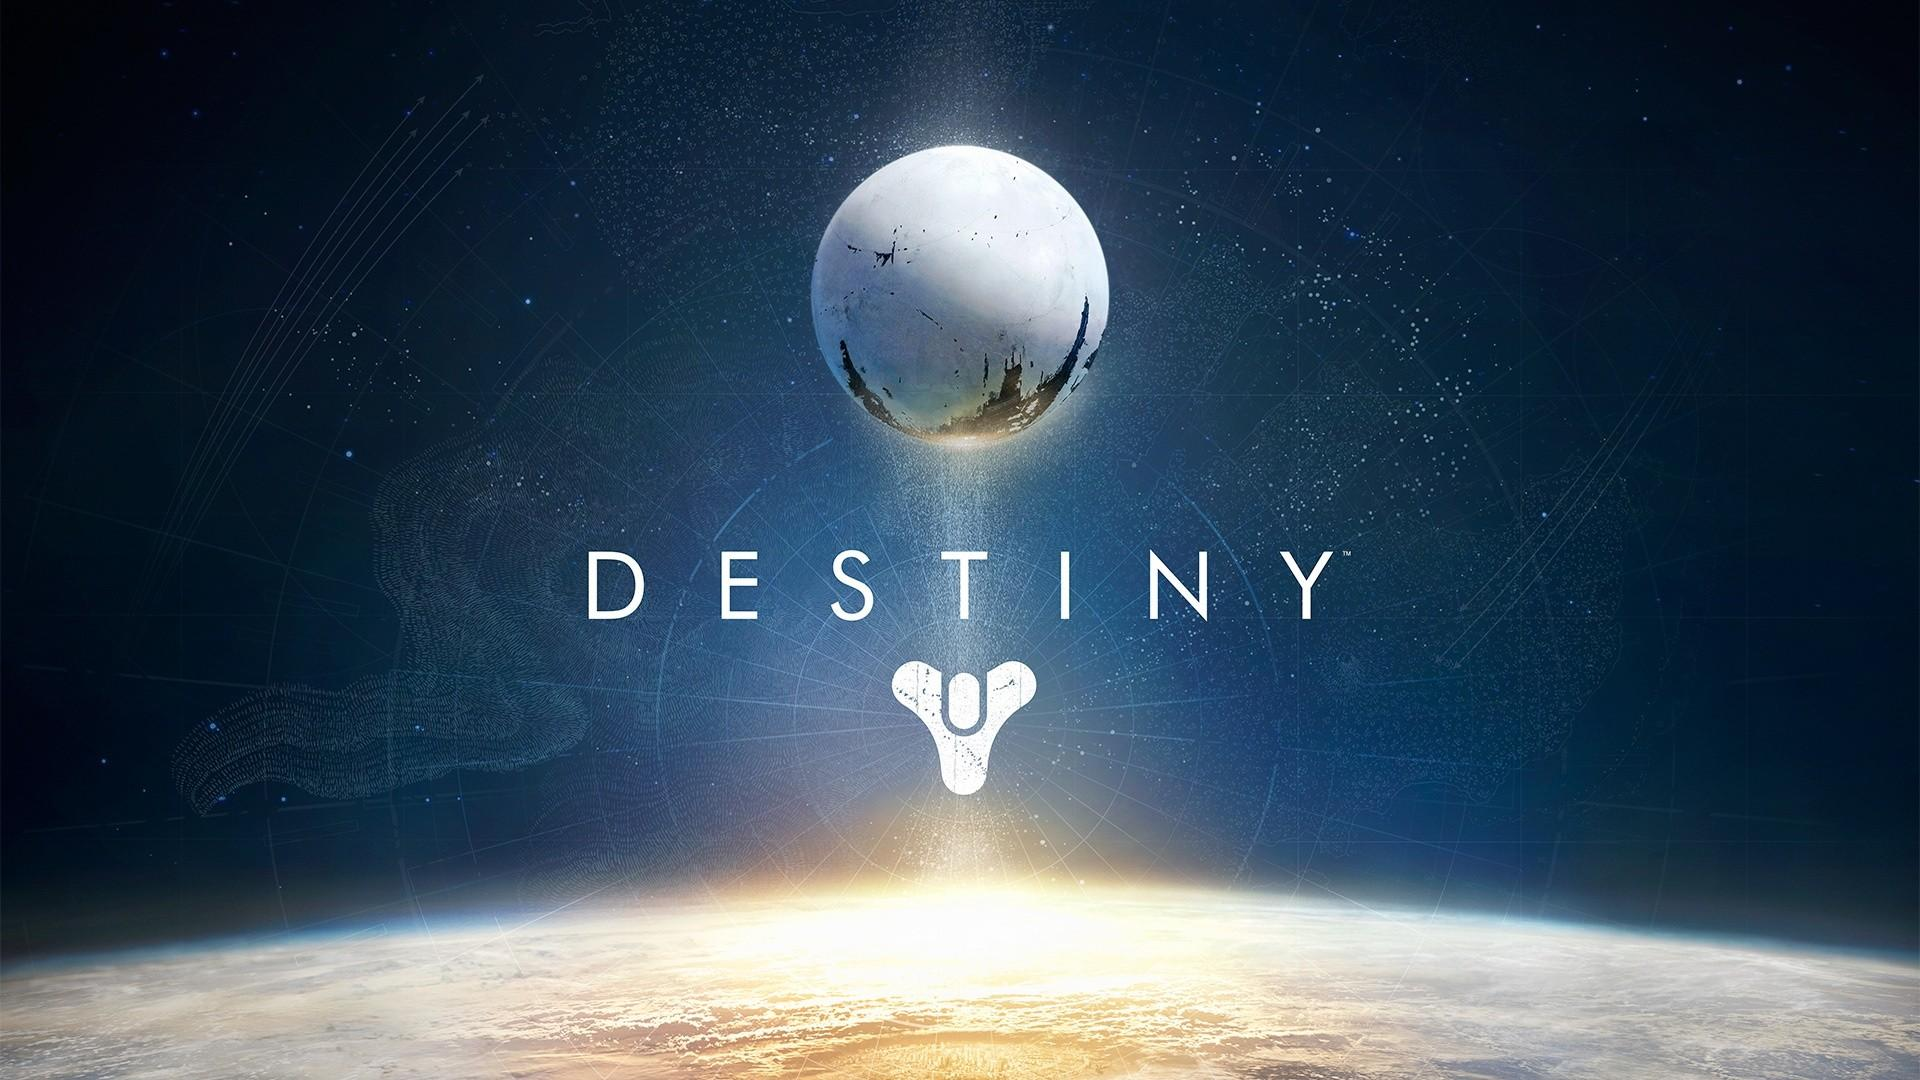 Destiny Wows Technically, Lacks Compelling Story